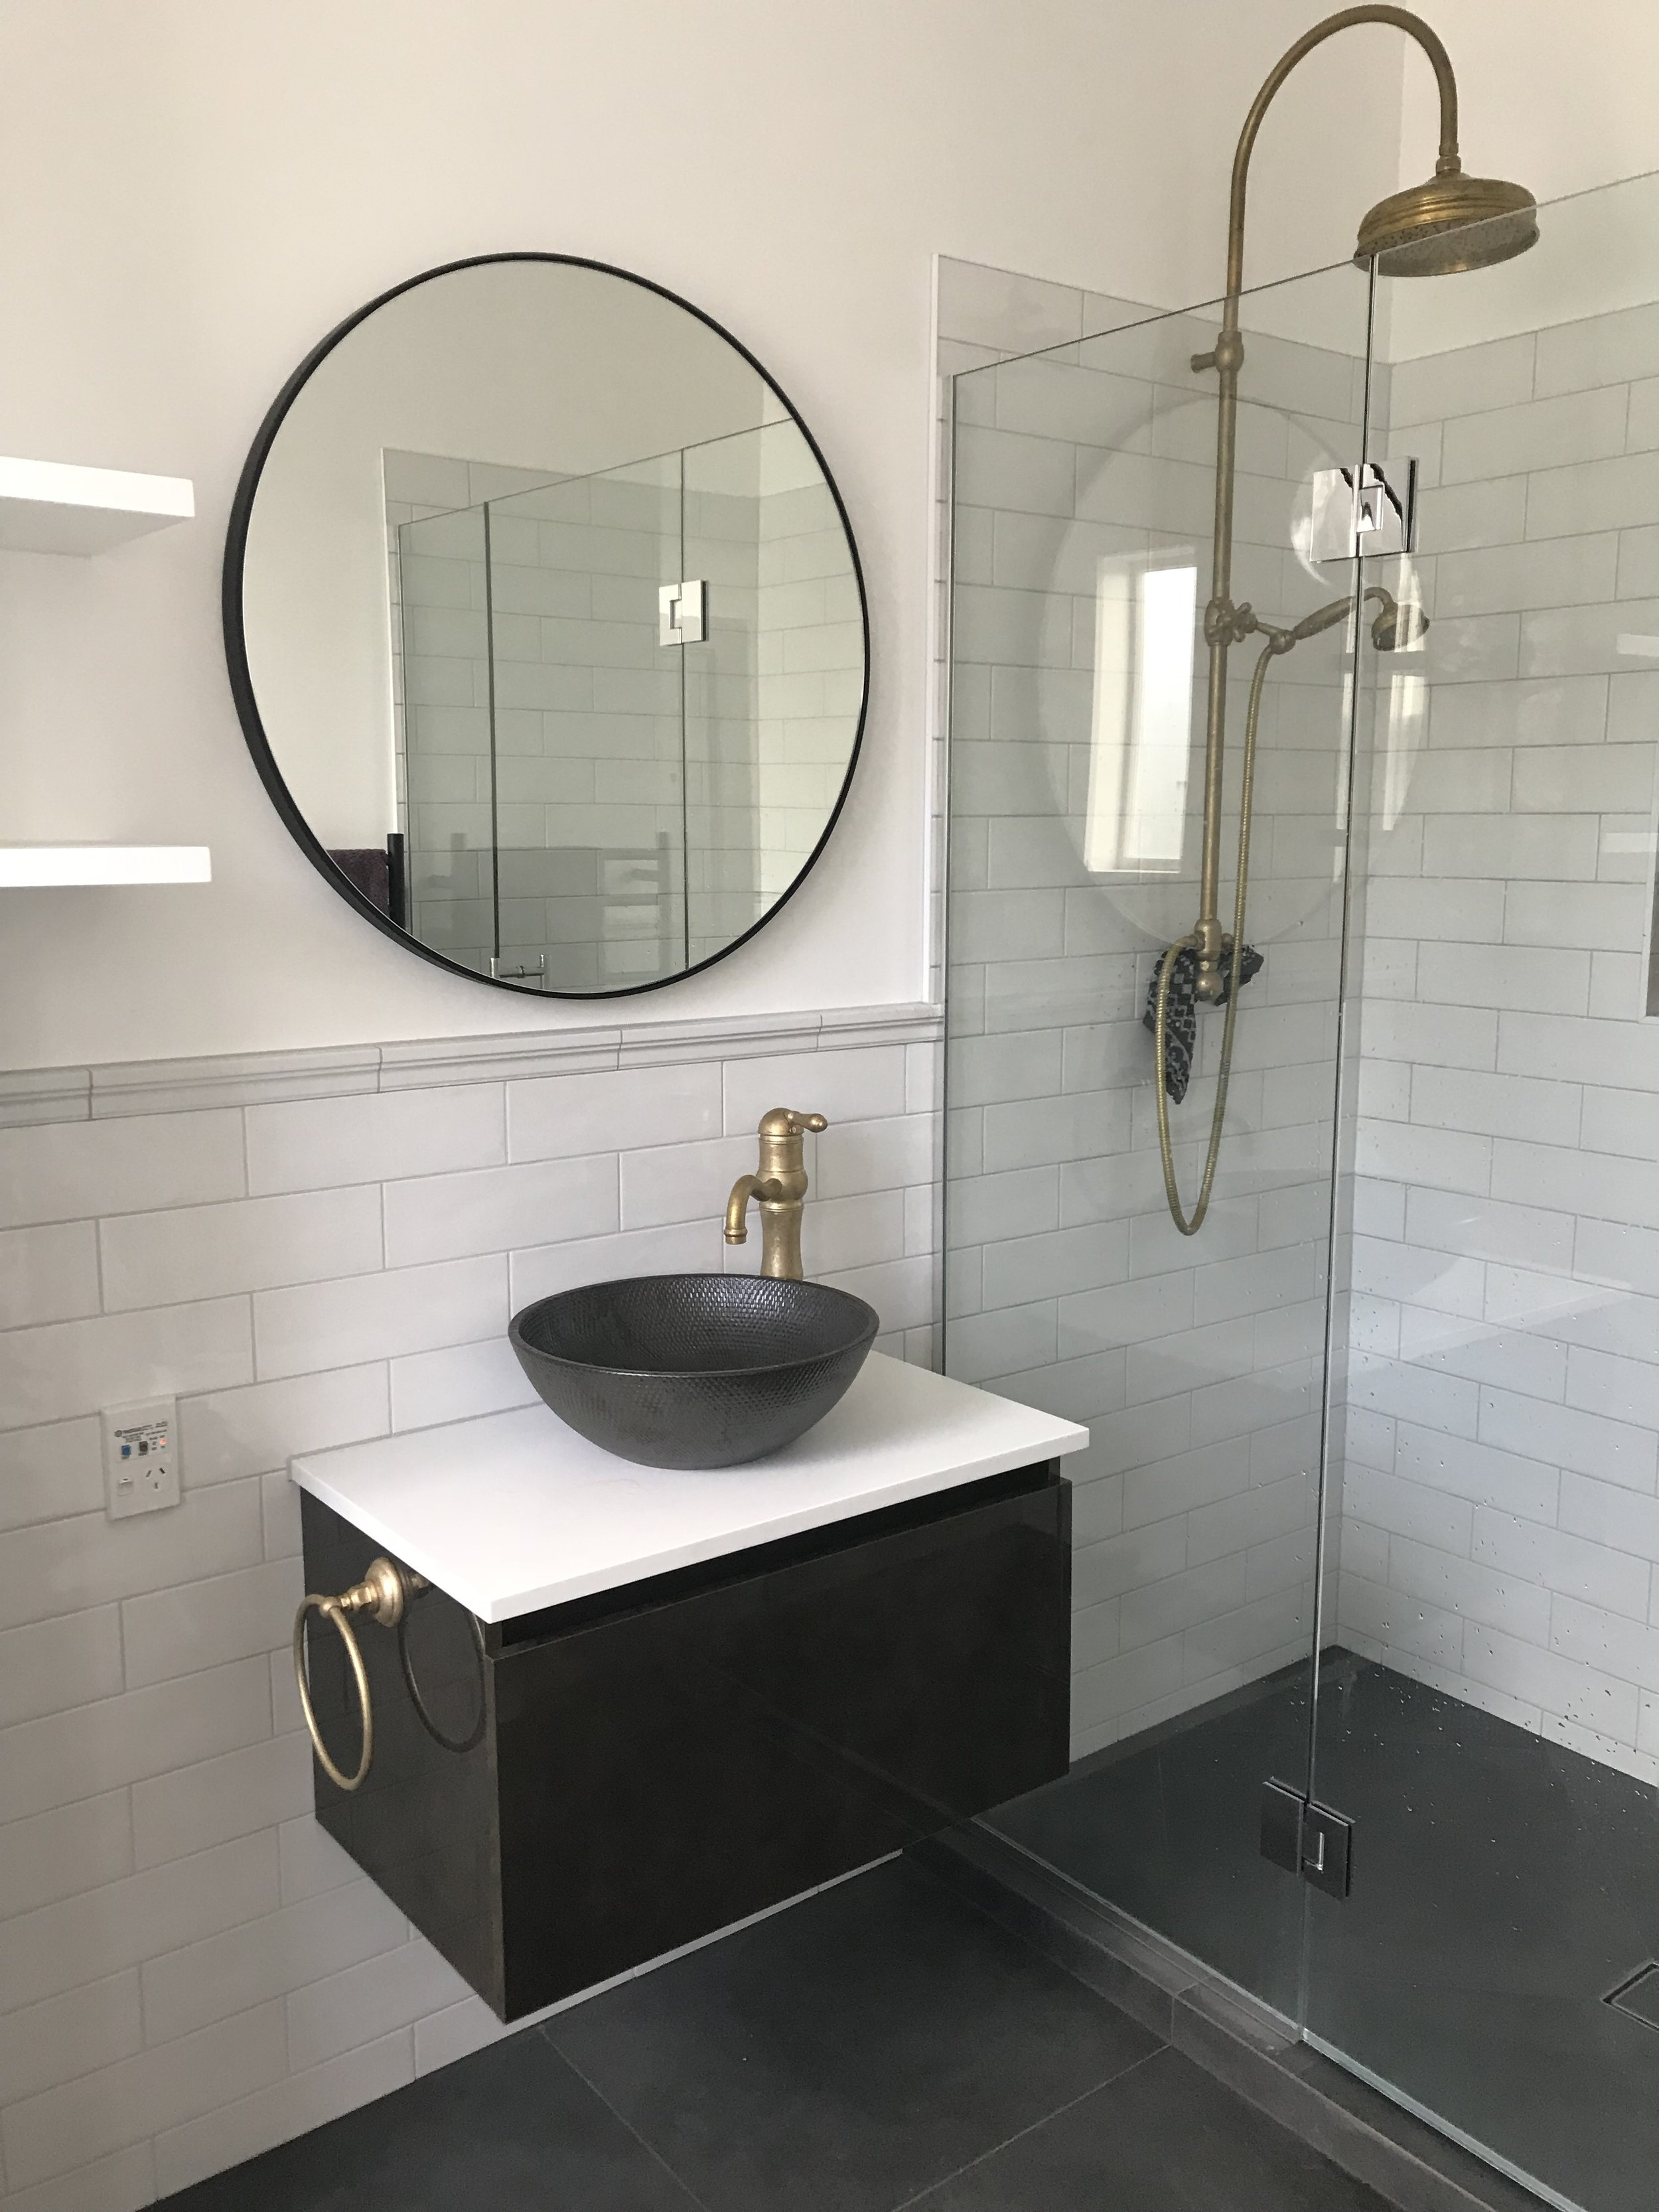 BATHROOM RENOVATION  Features: Subway Tiles, Brass Tapware, Brass Waterfall Showered, Raised Vanity and Bowl Style Basin.